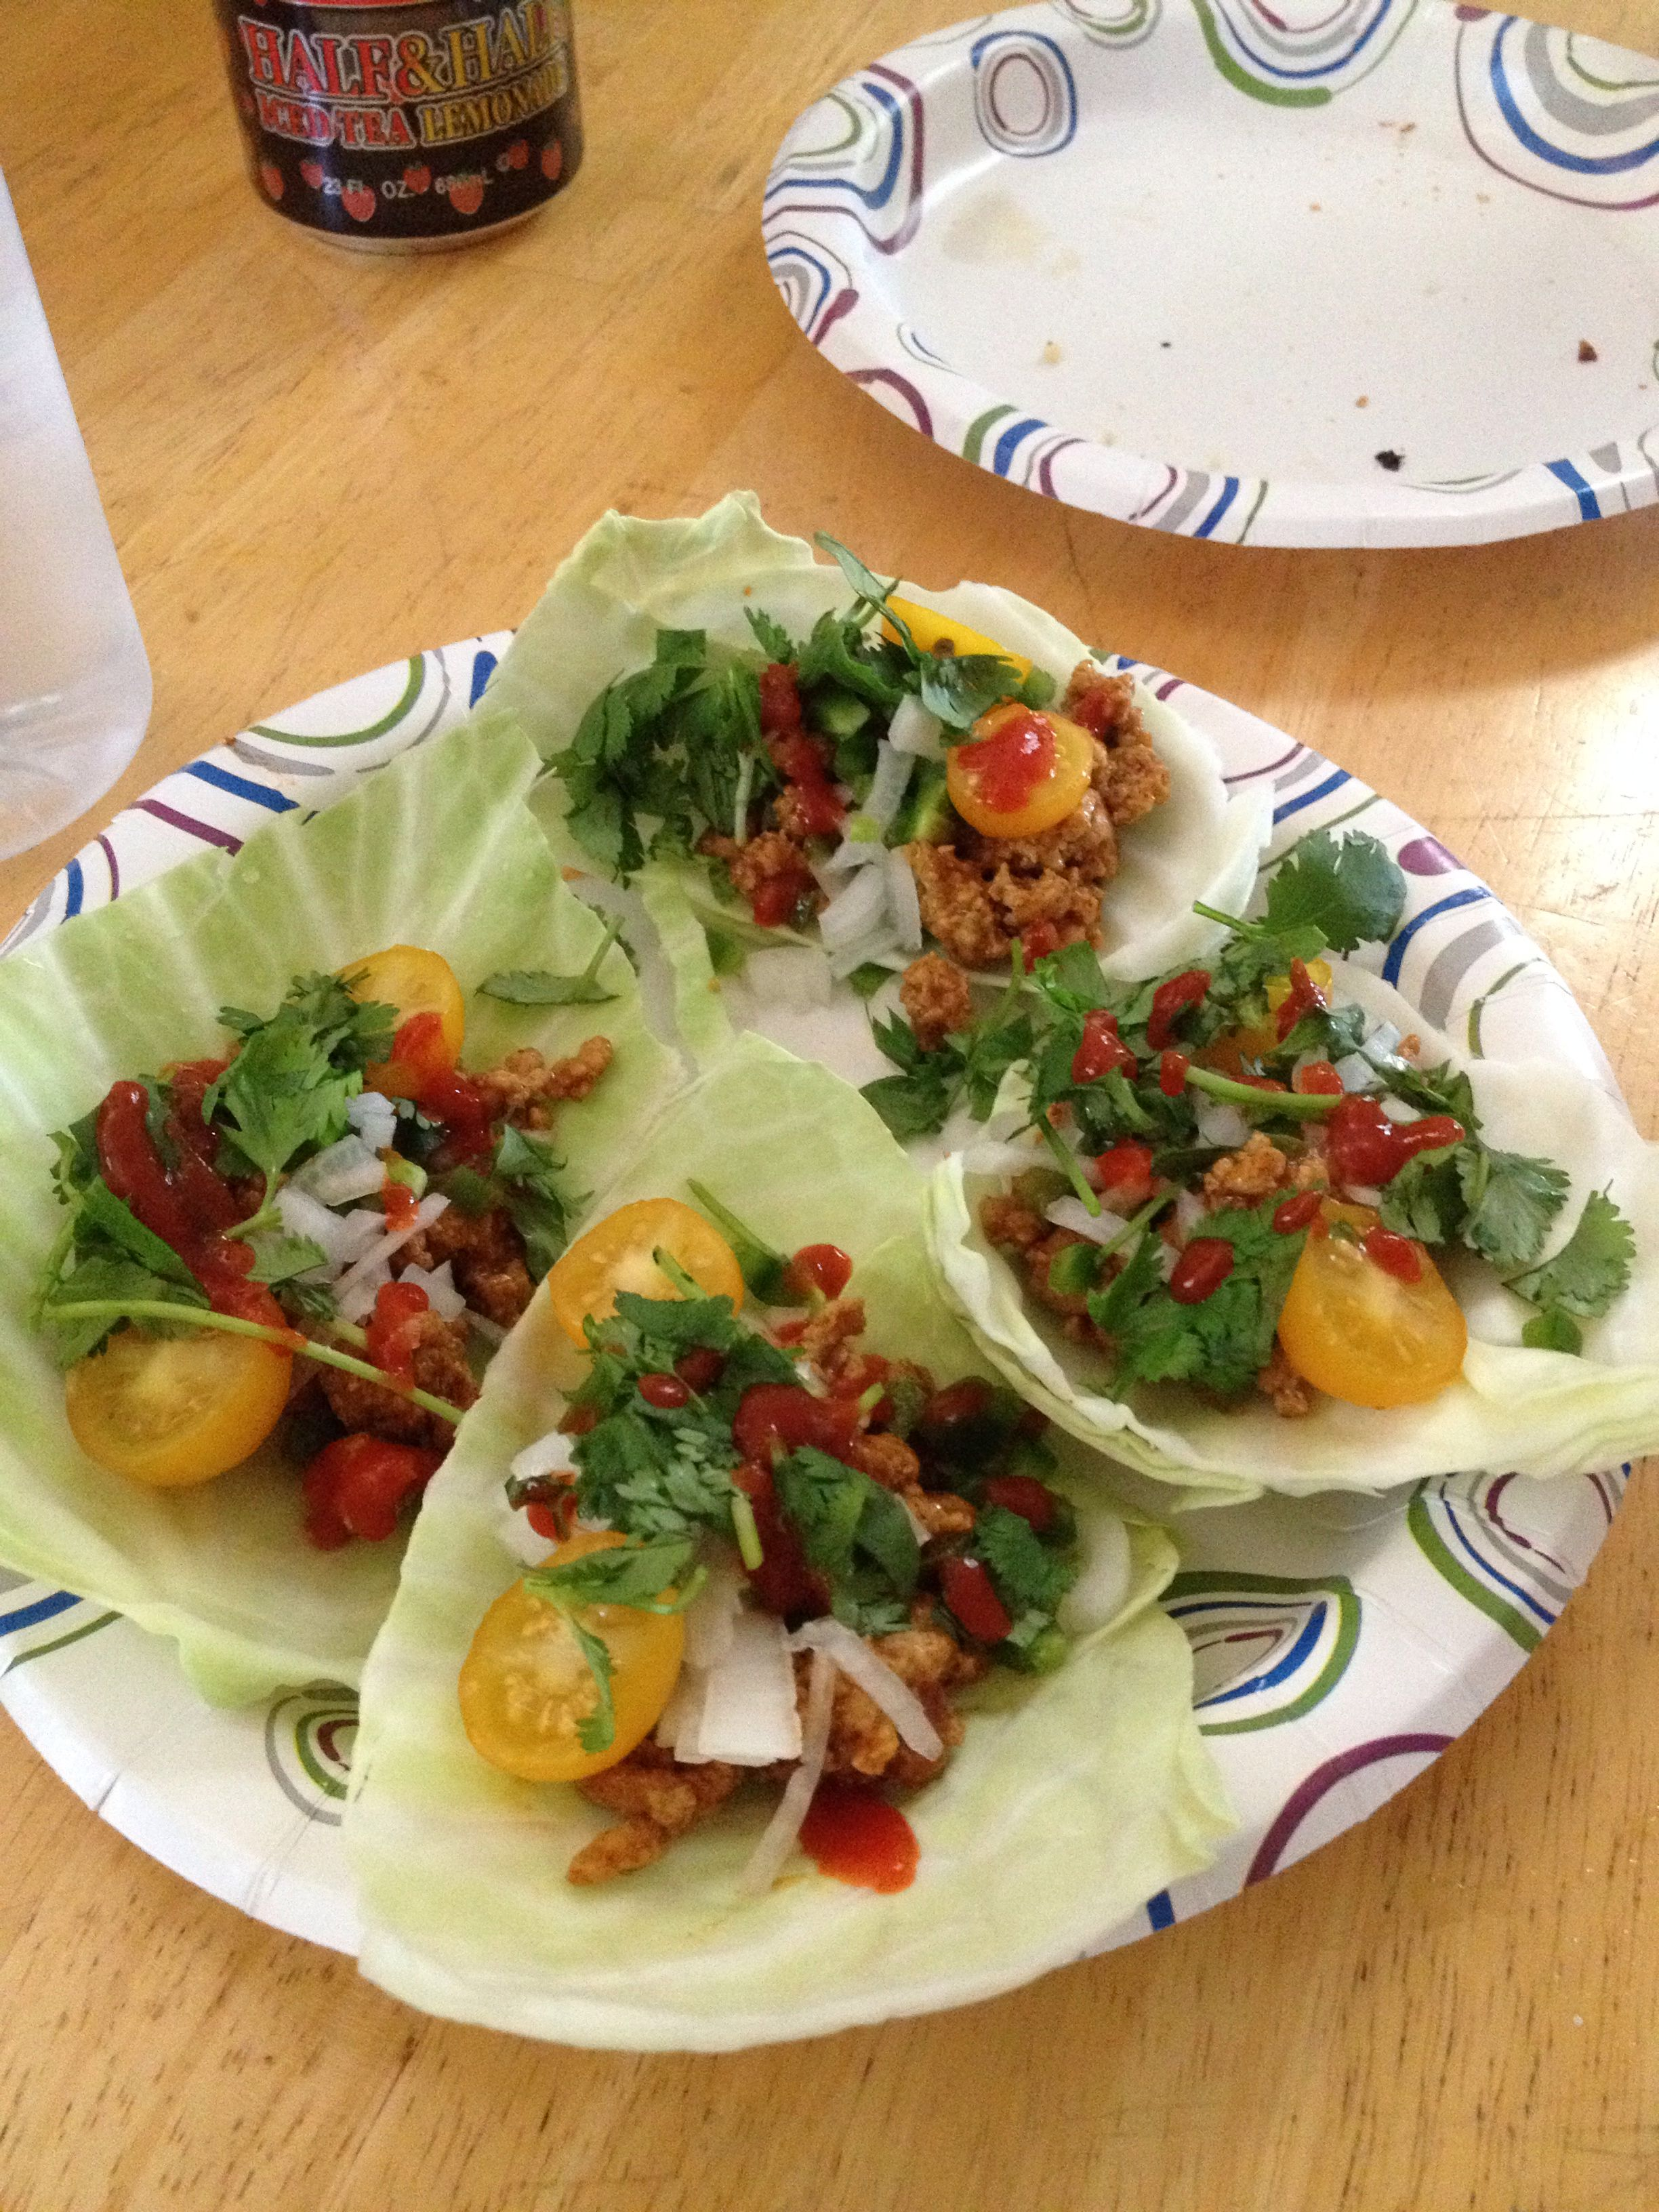 Turky tacos on cabbage leaves. Pound ground turkey  ( I eyeballed the rest sorry) Tomato sauce Cumin Chilli powder Garlic powder Onion powder  Salt  Pepper Minced jalopino cood in meat. Then I topped with chopped onion fresh jalopino and  cilantro . Then cherry yellow tomatoes . And of corse stirs sriracha sauce